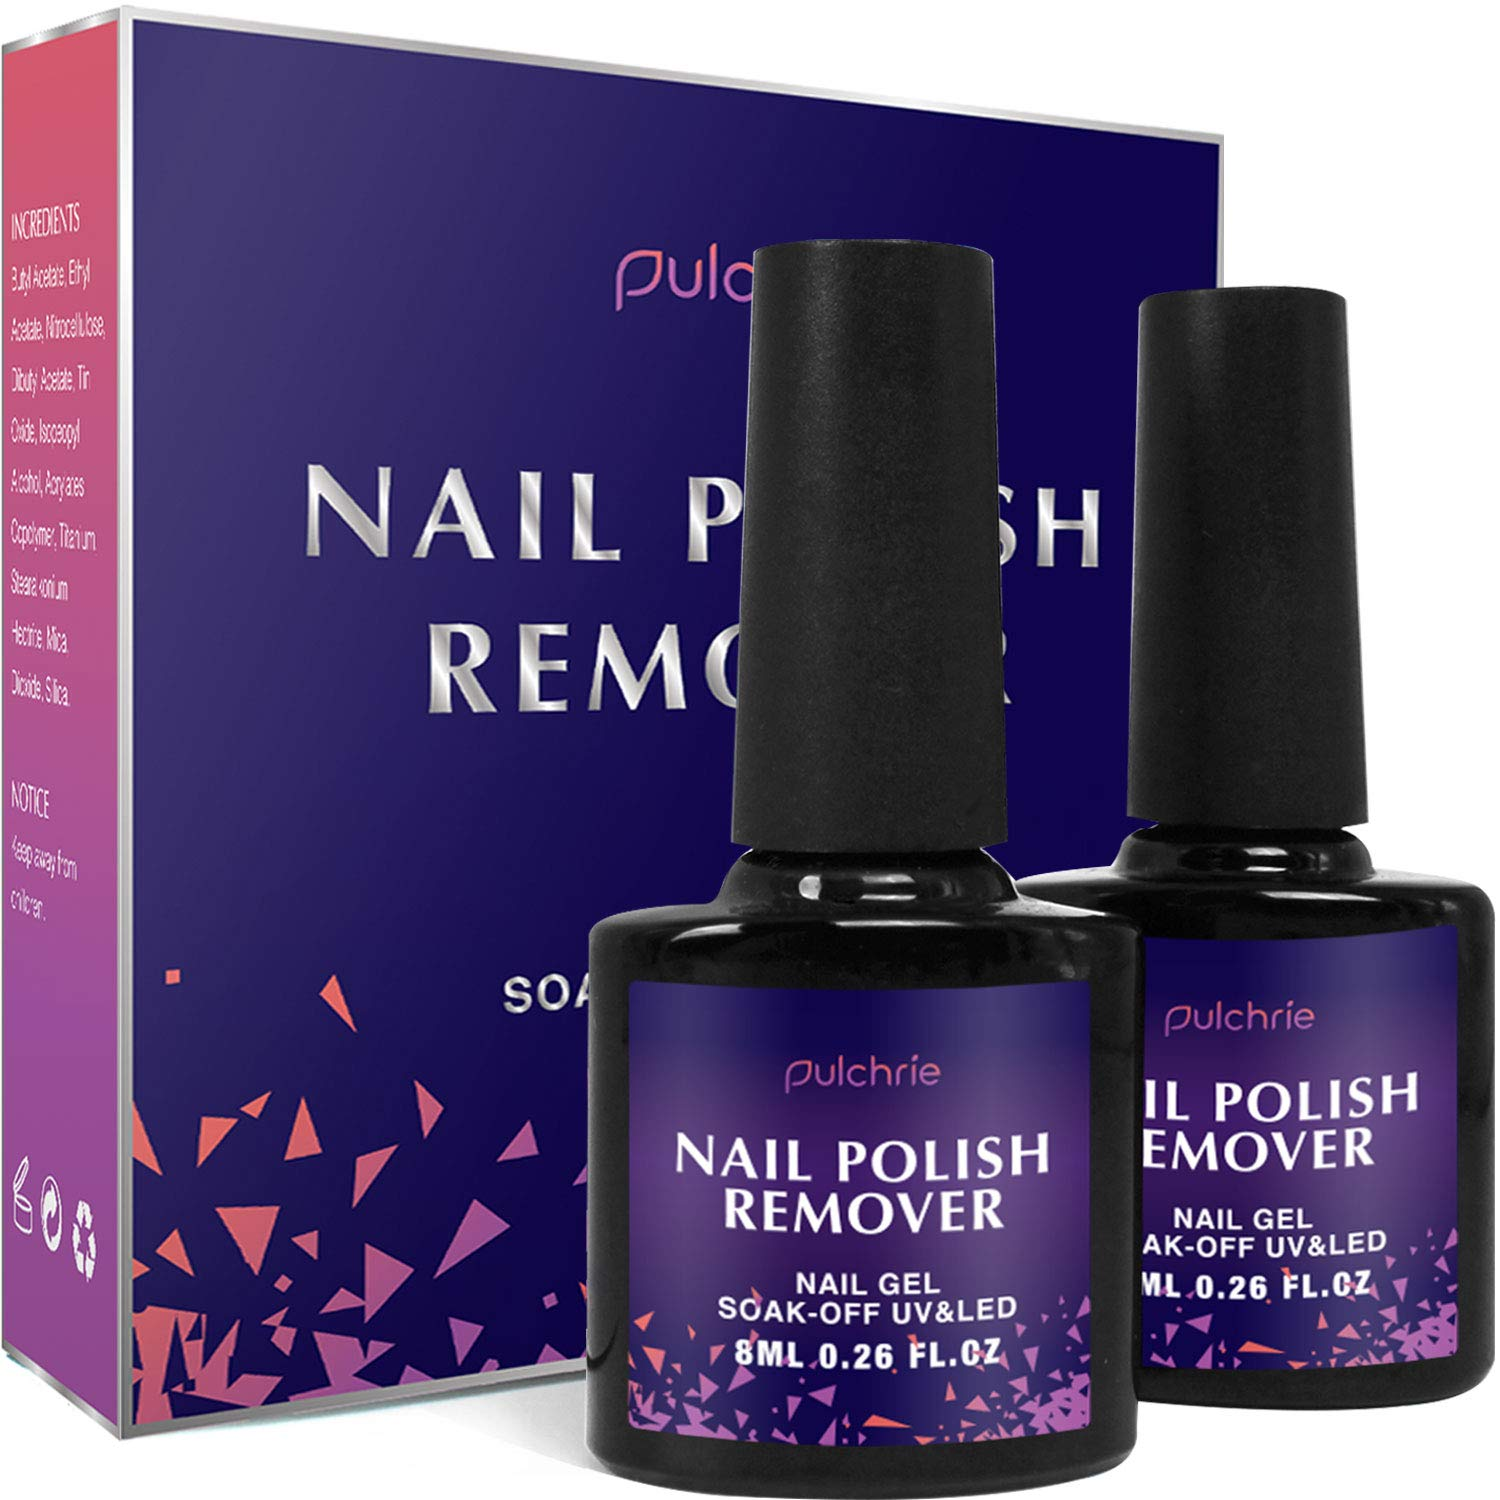 Pulchrie Magic Nail Polish Remover 2 Pcs Professional Removes Soak-Off Gel Nail Polish S1 by Pulchrie